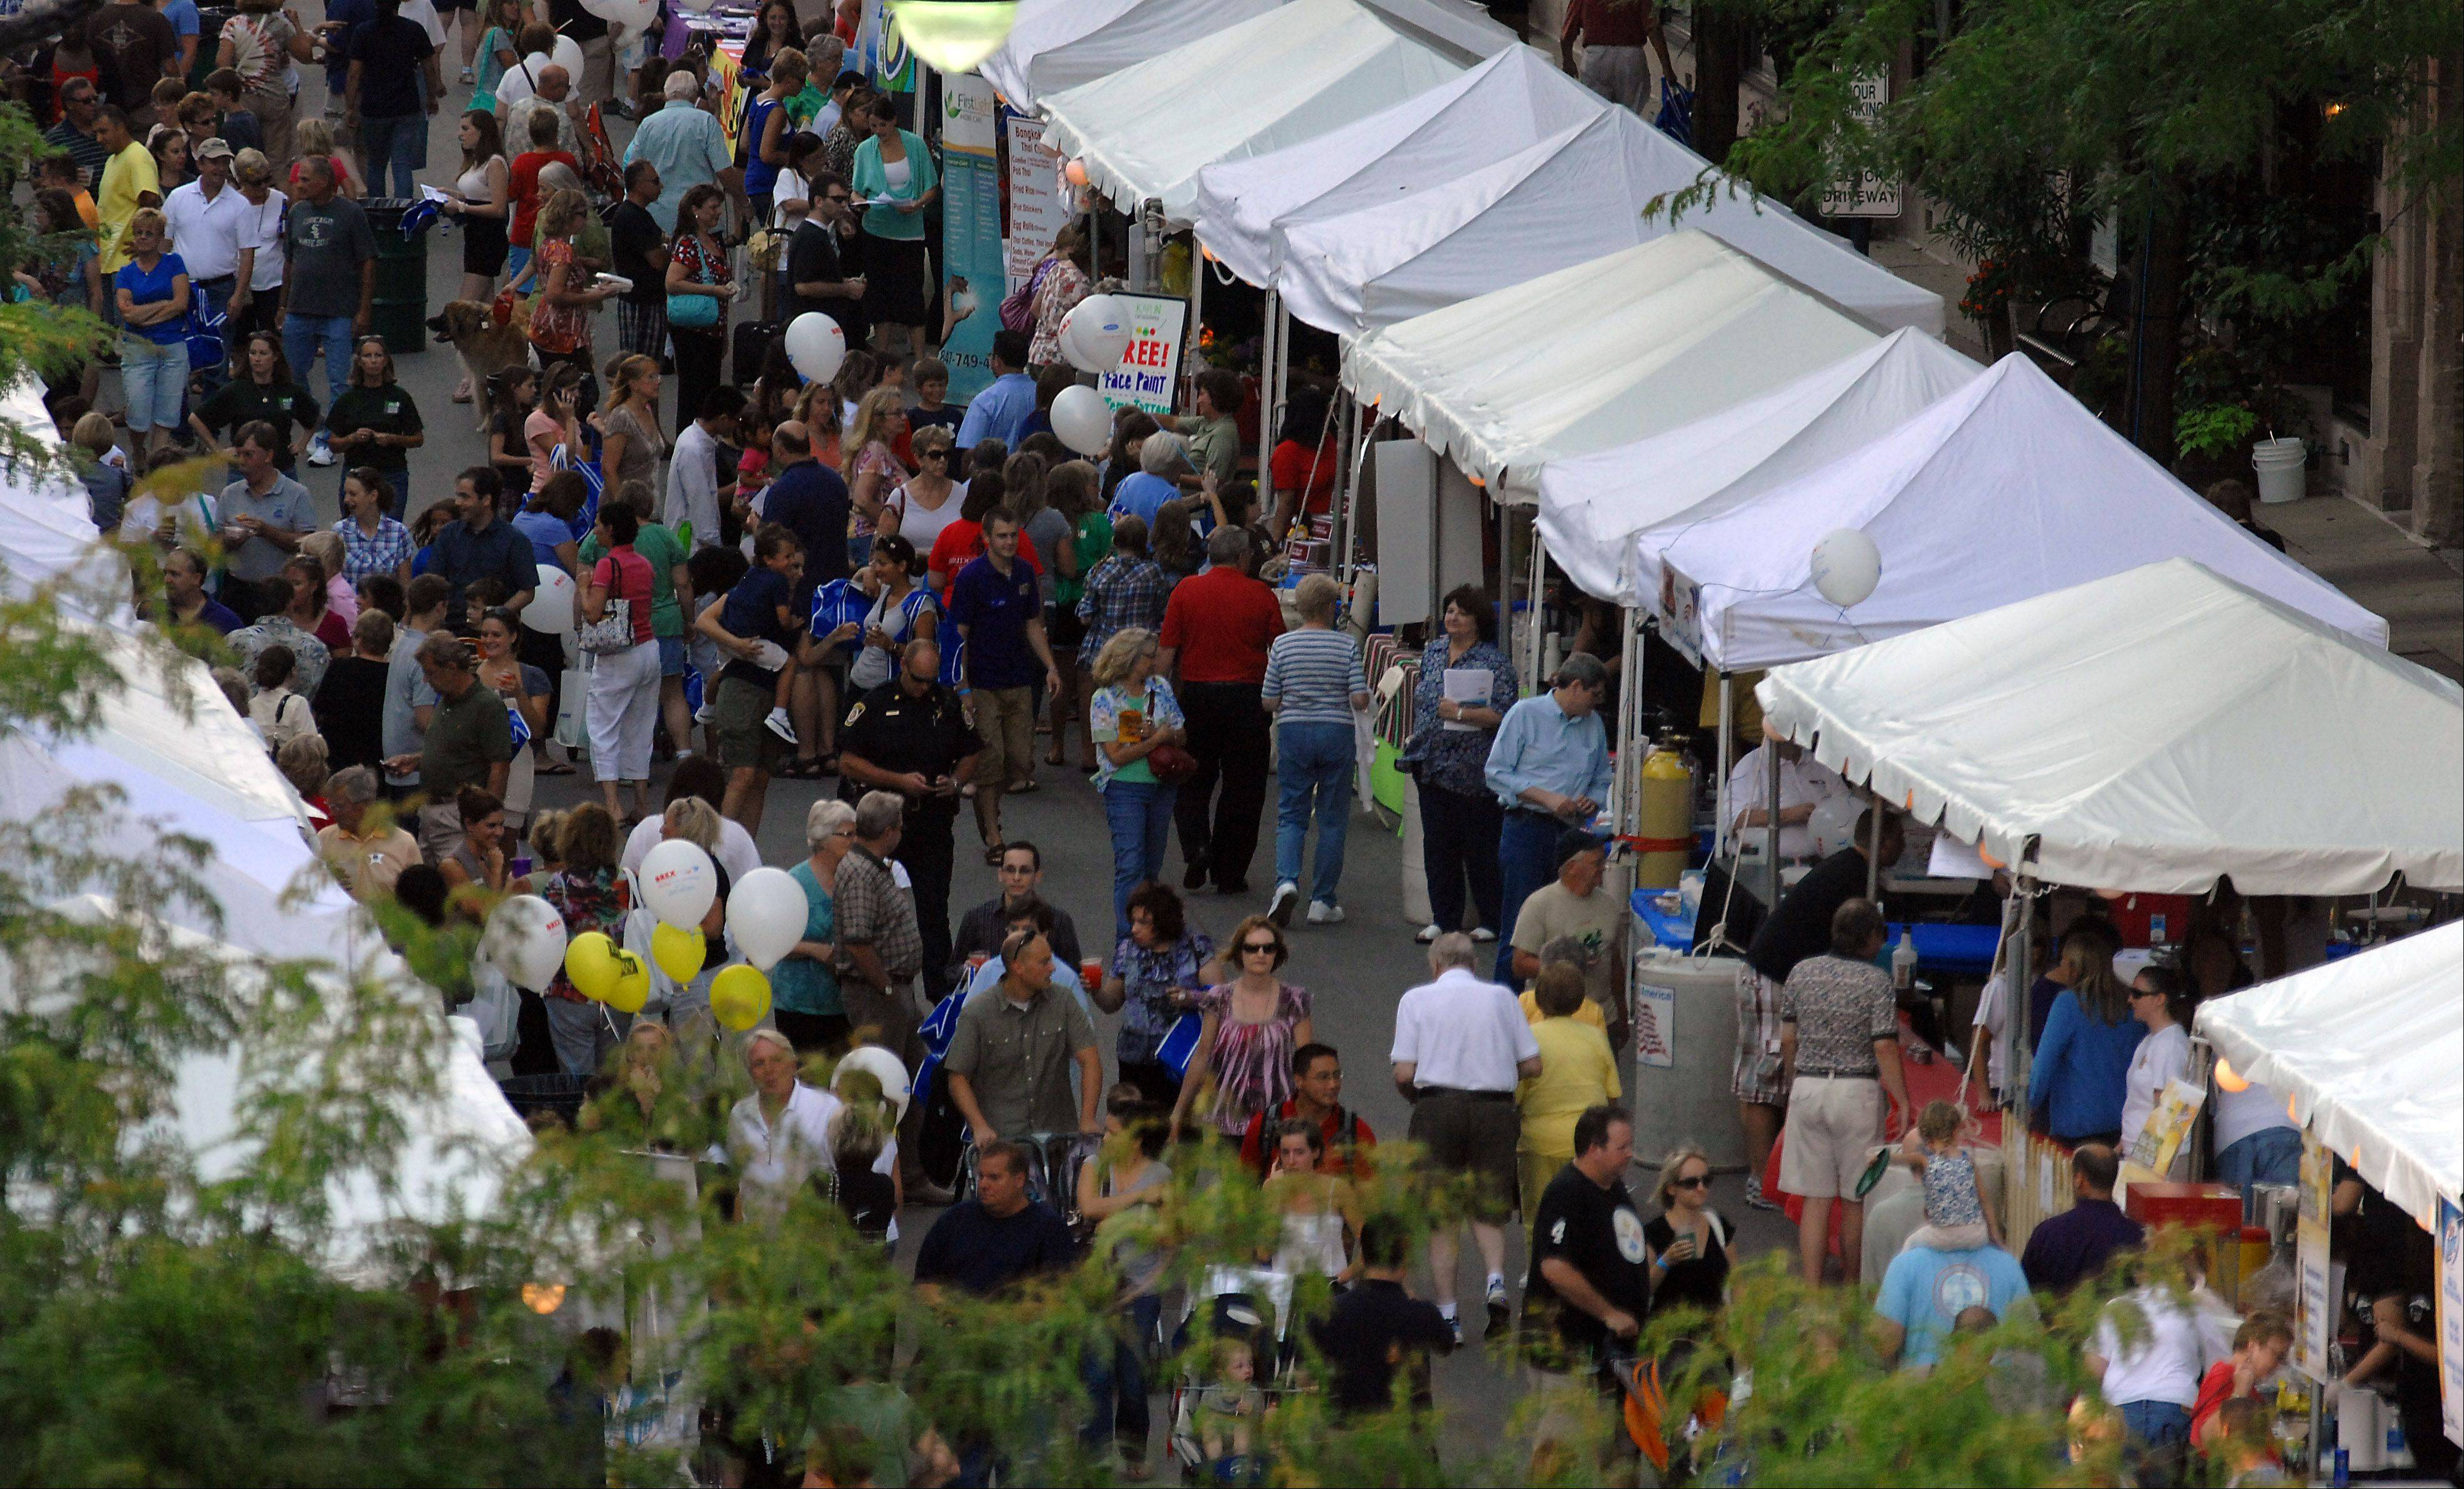 Thousands of people attend Arlington Heights celebration of the Arlington Million on Friday.